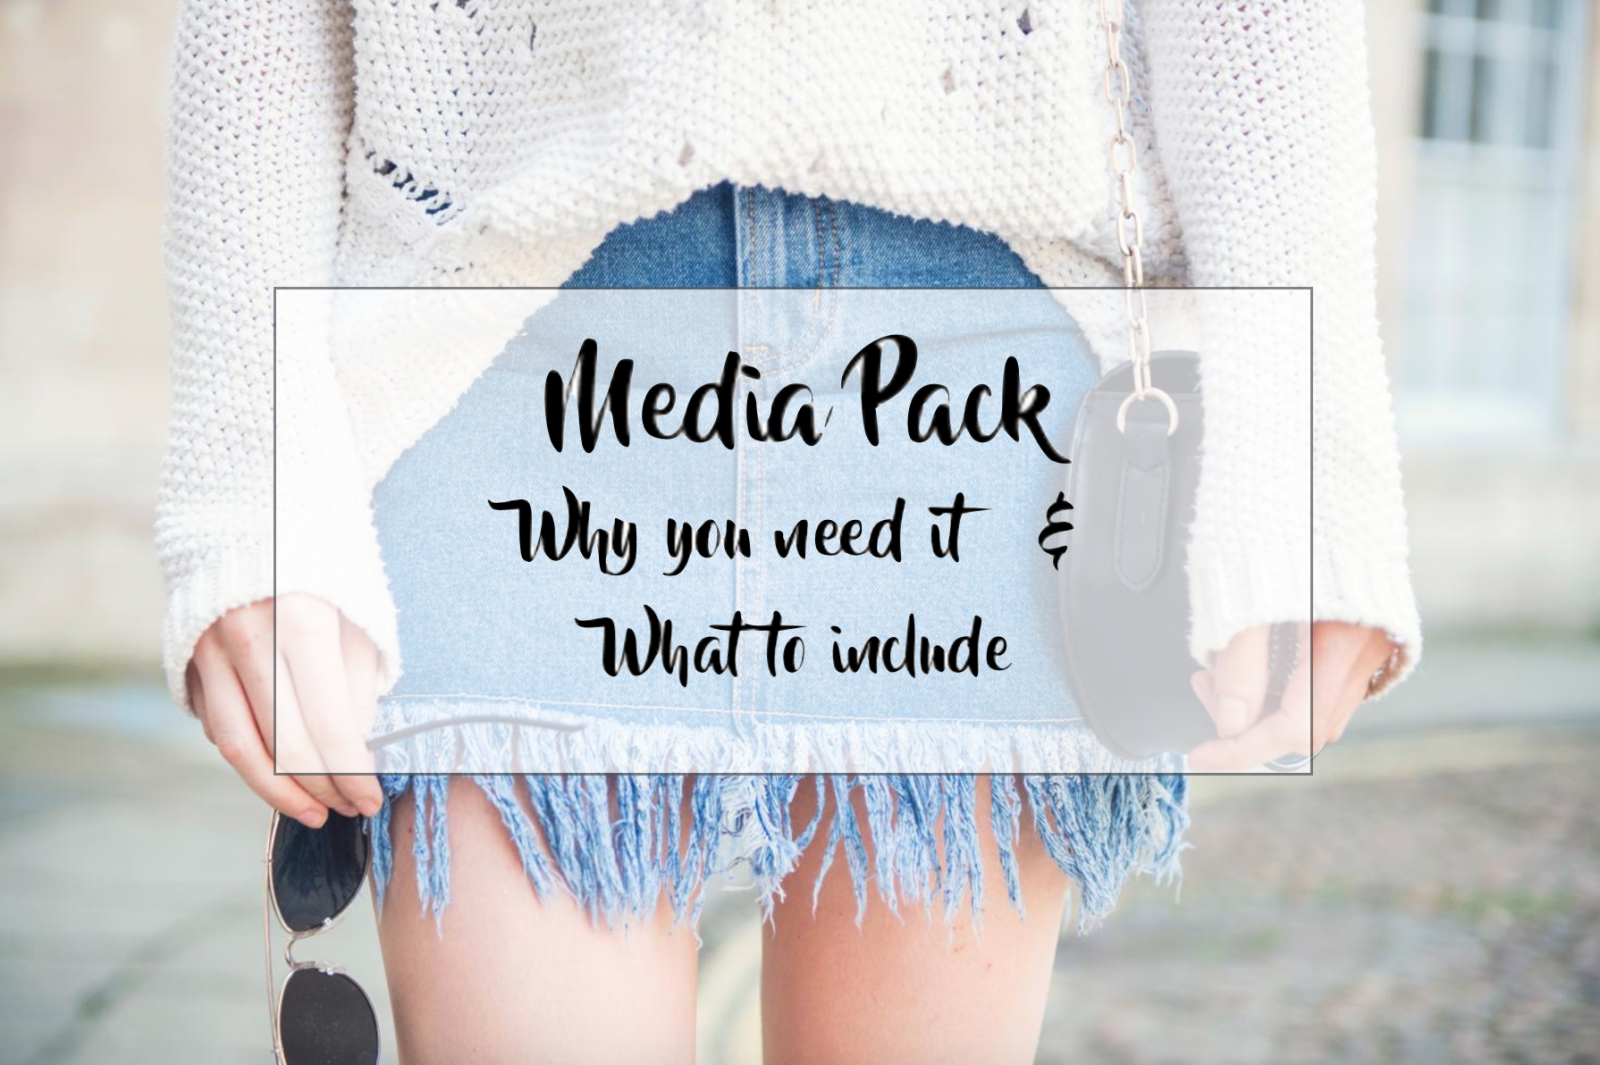 media-pack-blogging-tips